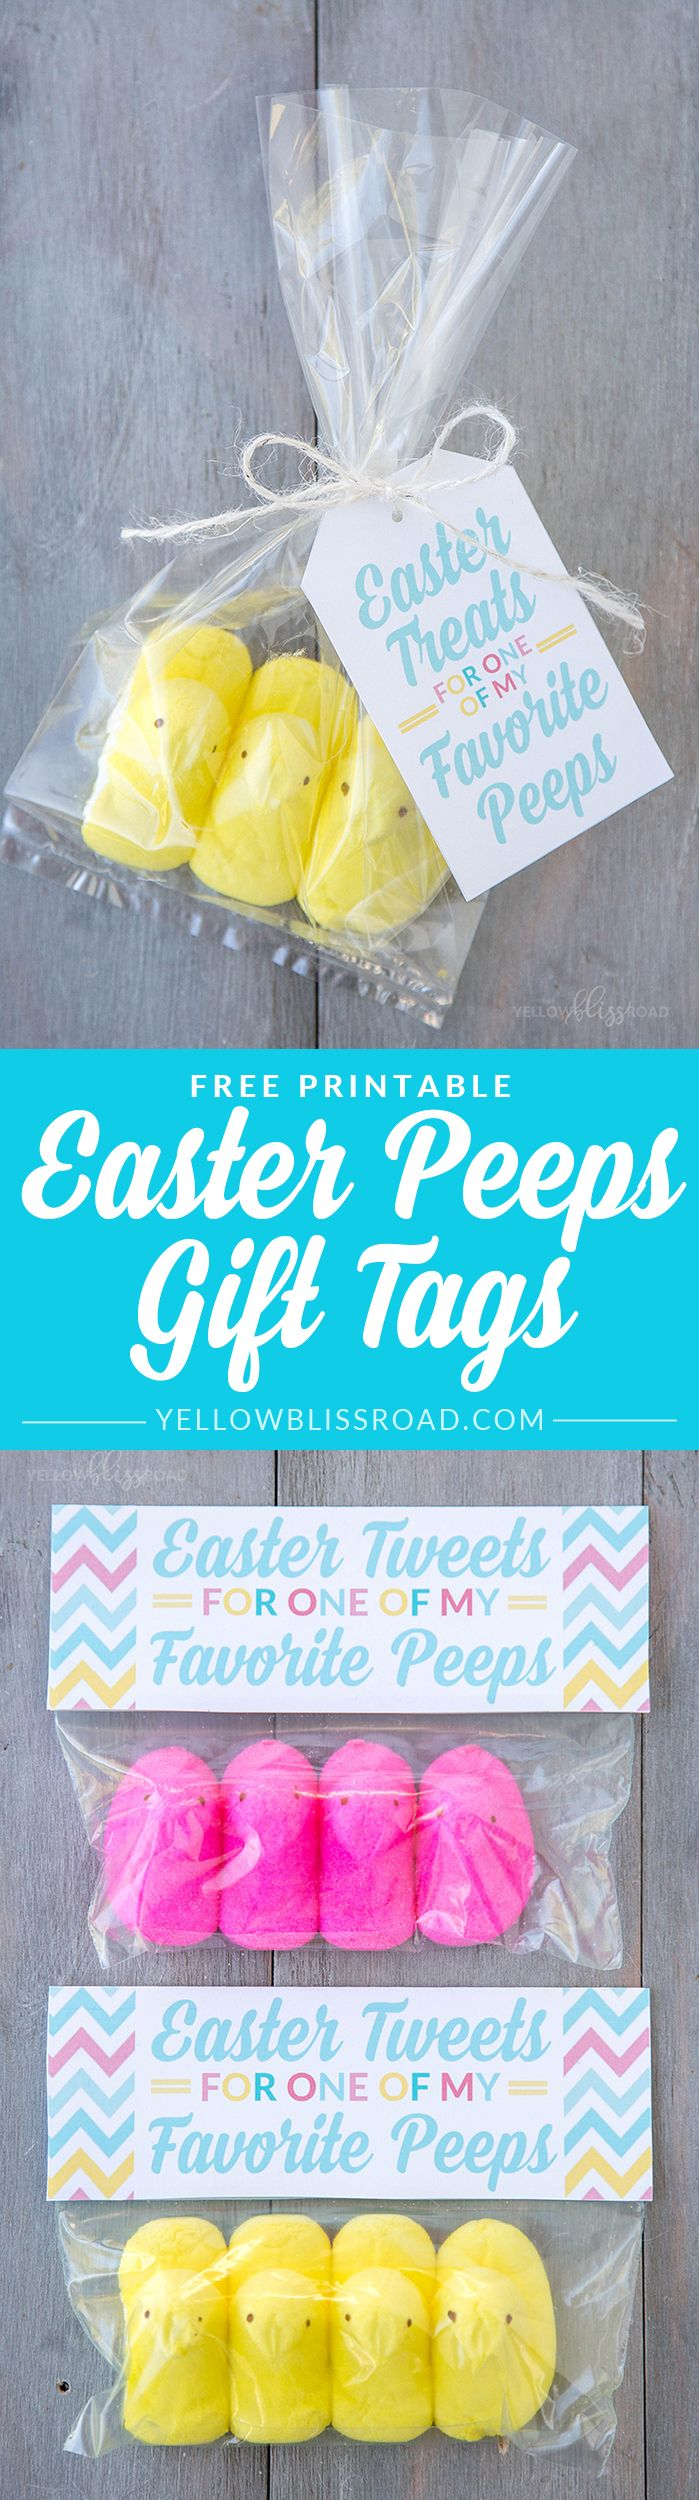 70 best easter crafts images on pinterest peeps easter gift idea with free printables negle Images